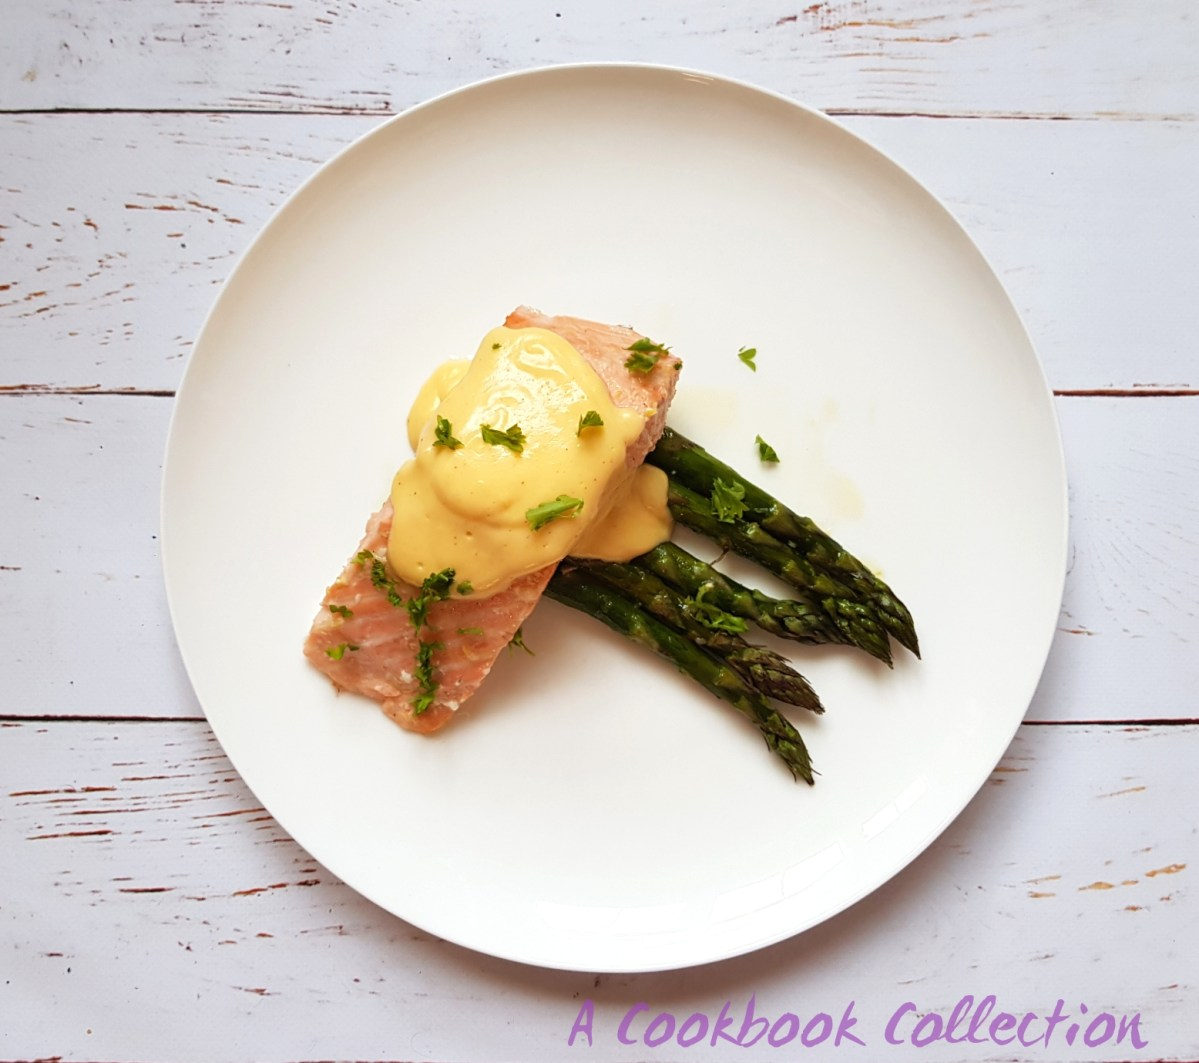 Roast Salmon with Asparagus and Hollandaise Sauce